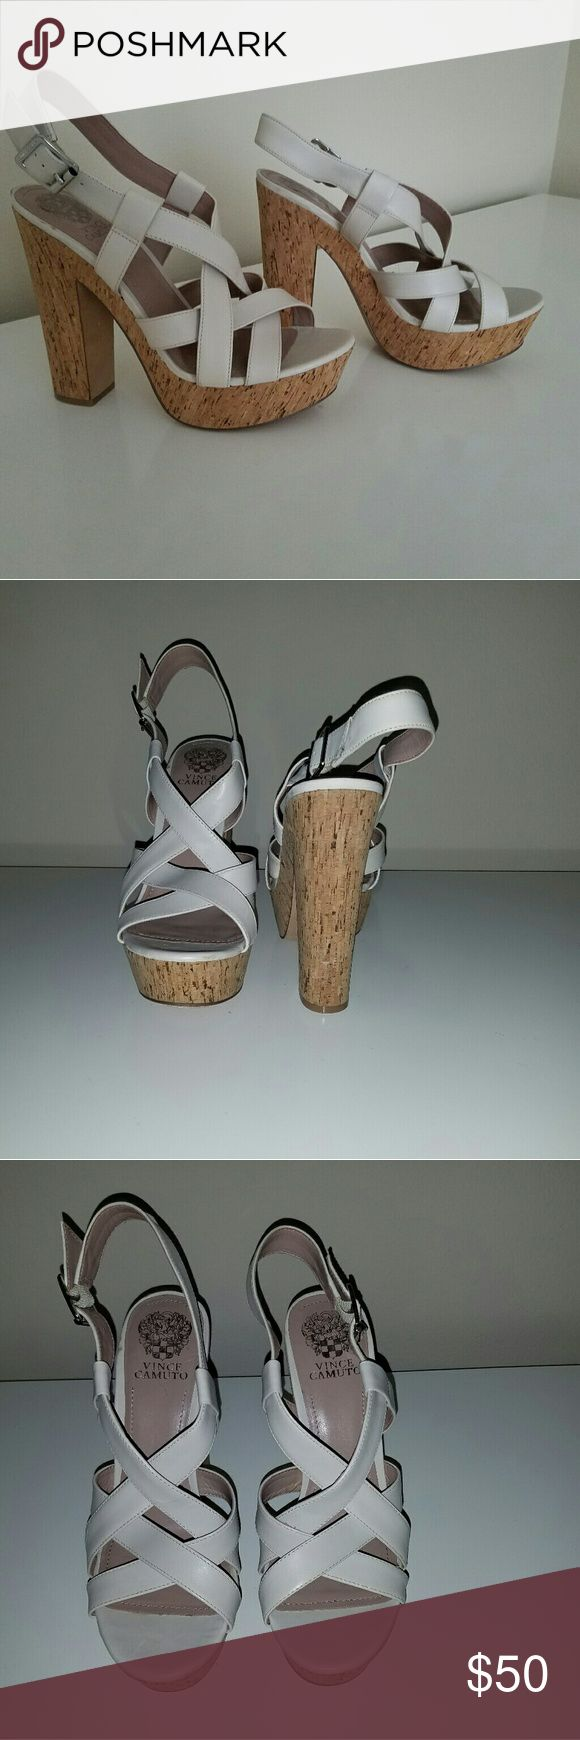 Vince Camuto Barley Cream Wedge Shoe New Never Worn SIZE 9.5 Barley Cork wedge  Real cream leather straps Heel Height 5 1/4 inch   Front Platform 1 1/4 inch  Offers and Questions Welcomed Happy Shopping ? Vince Camuto Shoes Wedges